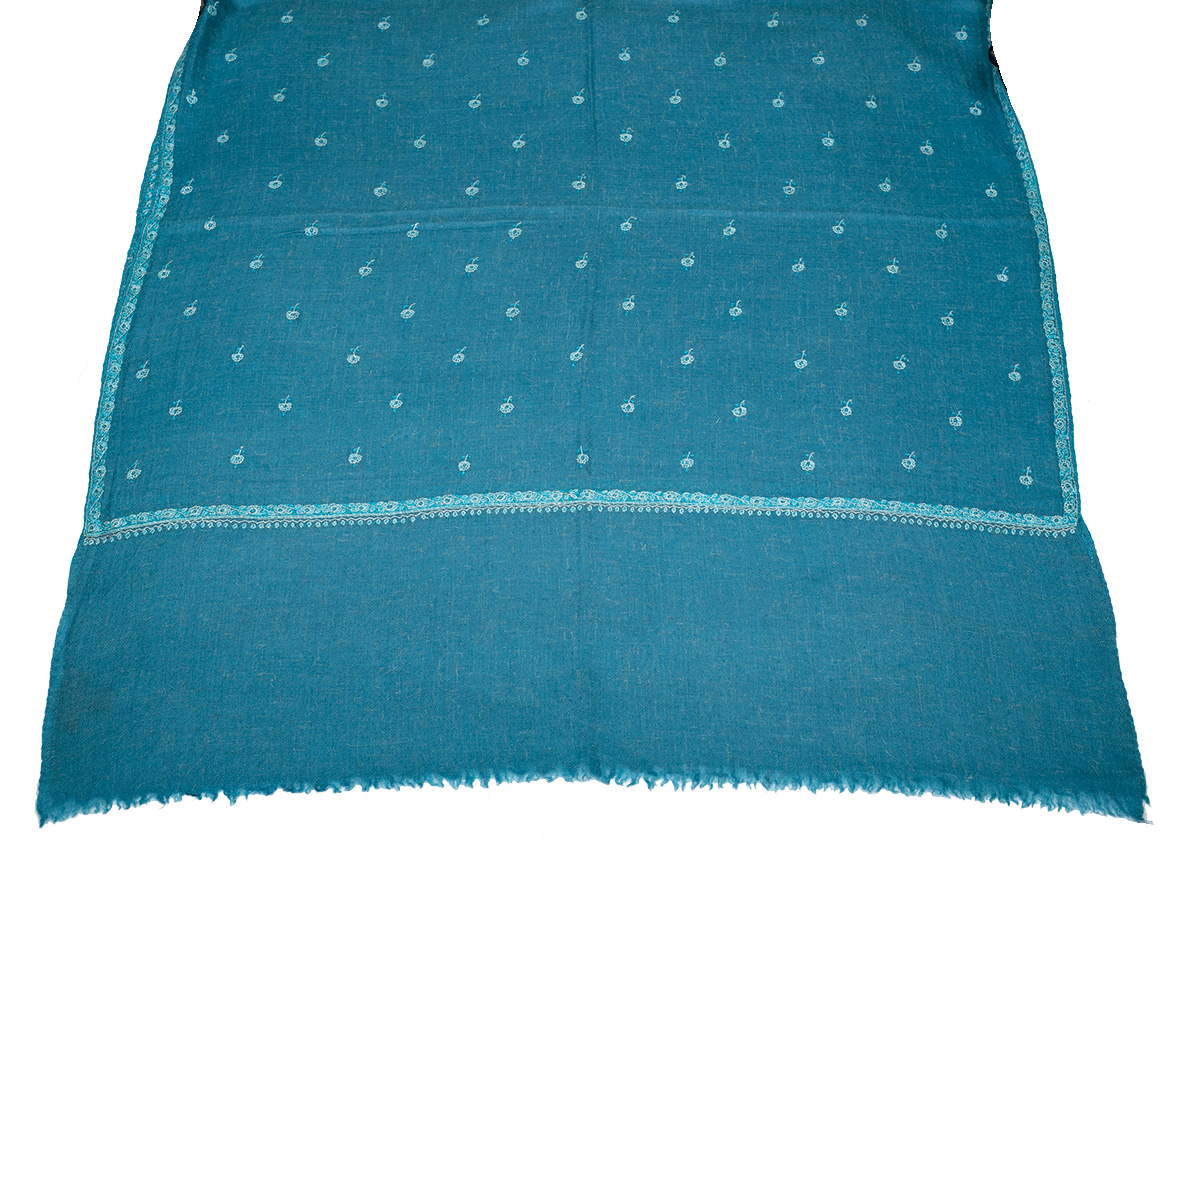 Hand Embroidered Cashmere Pashmina Stole - Steel Blue